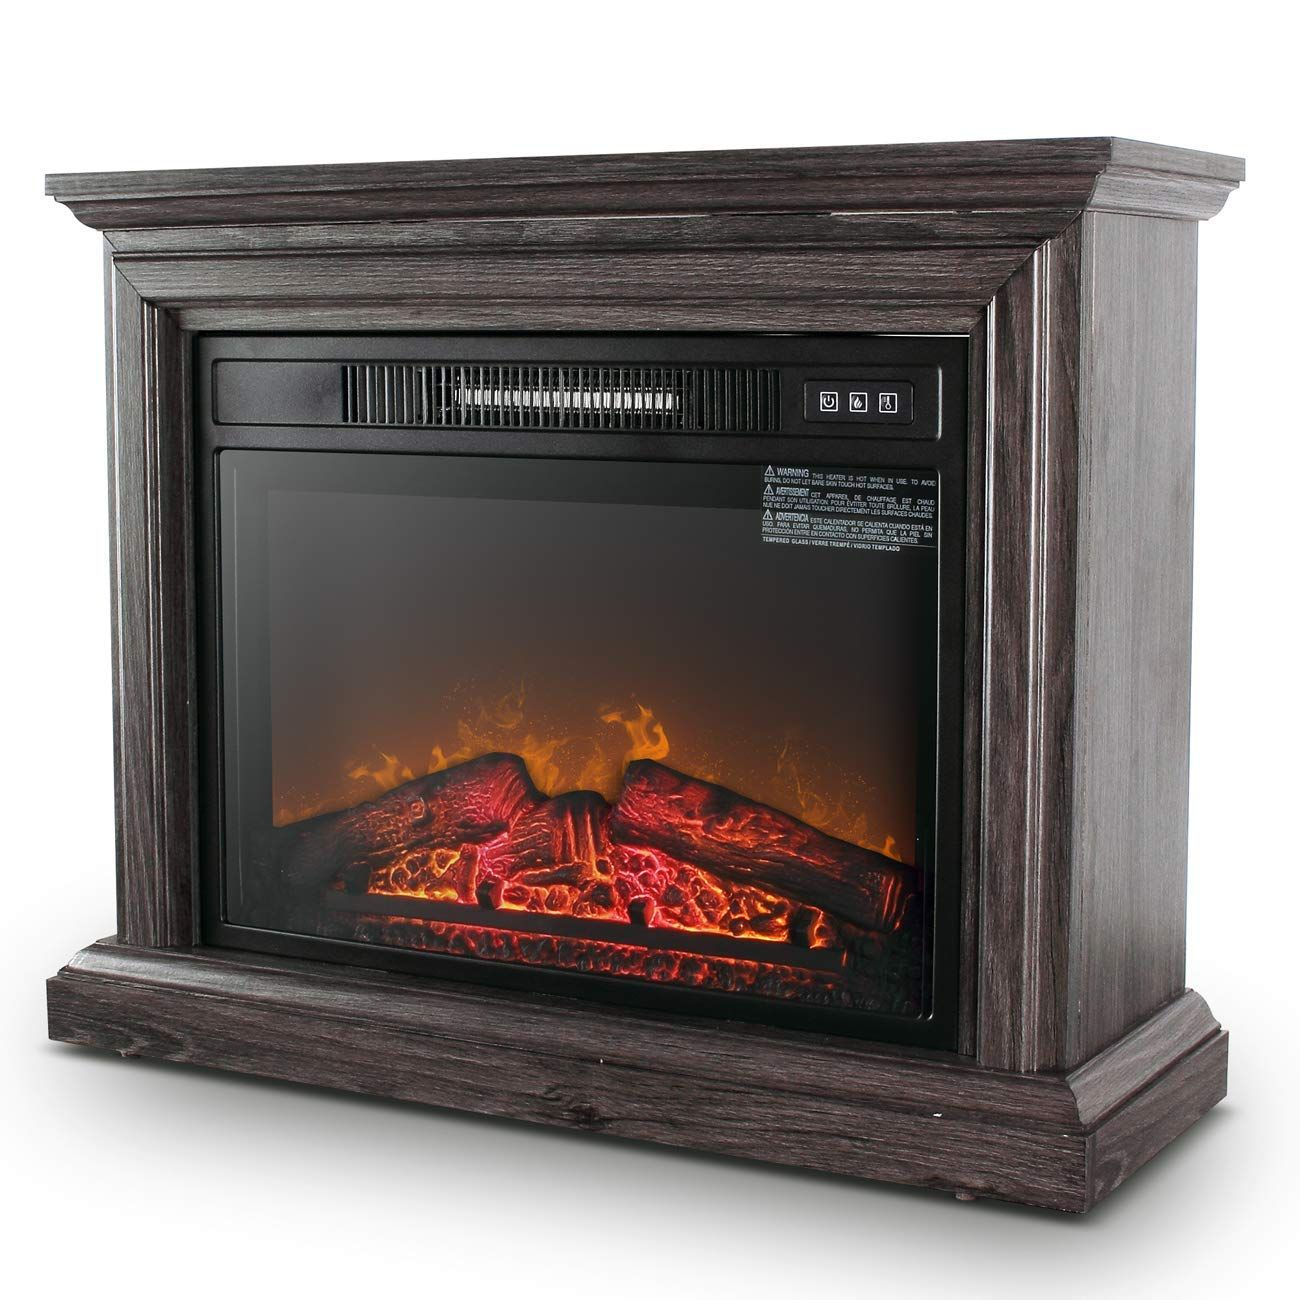 Della 1400w Embedded Electric Fireplace Insert Freestanding Heater W Remote Control Glass Vie Freestanding Fireplace Stove Heater Fireplace Inserts